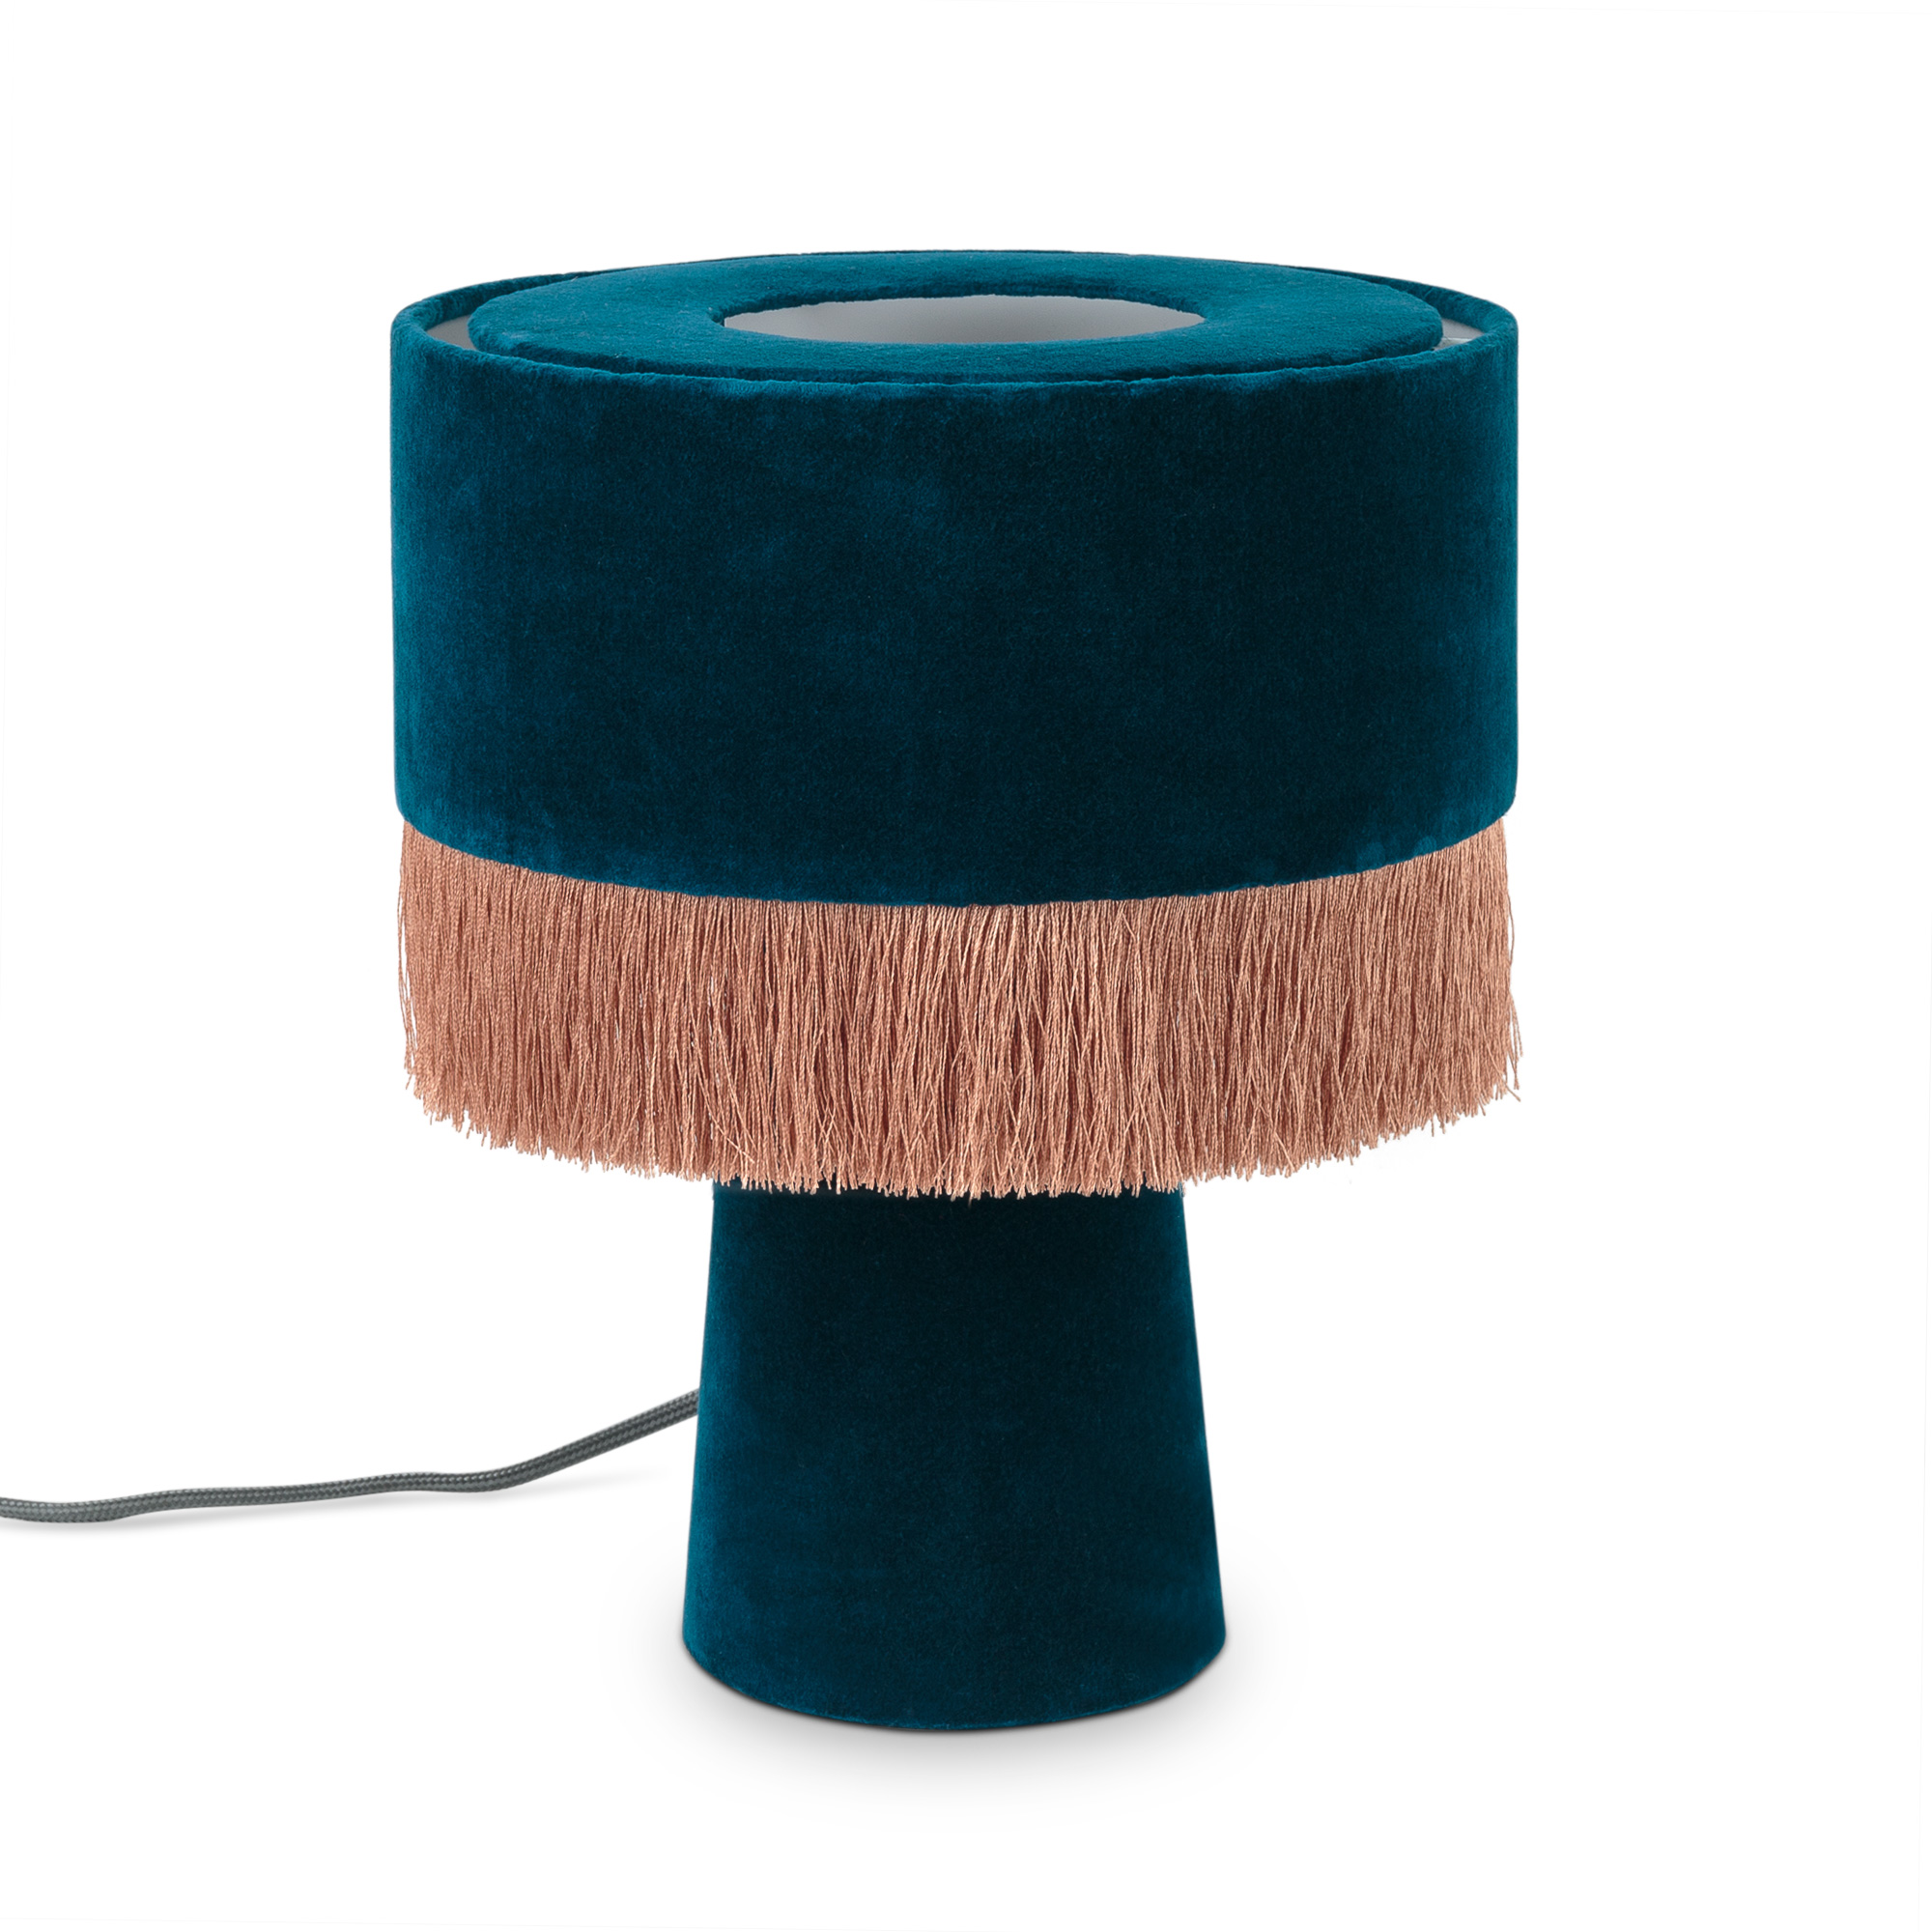 Ero Blue Table Lamp from Oliver Bonas: £65.00